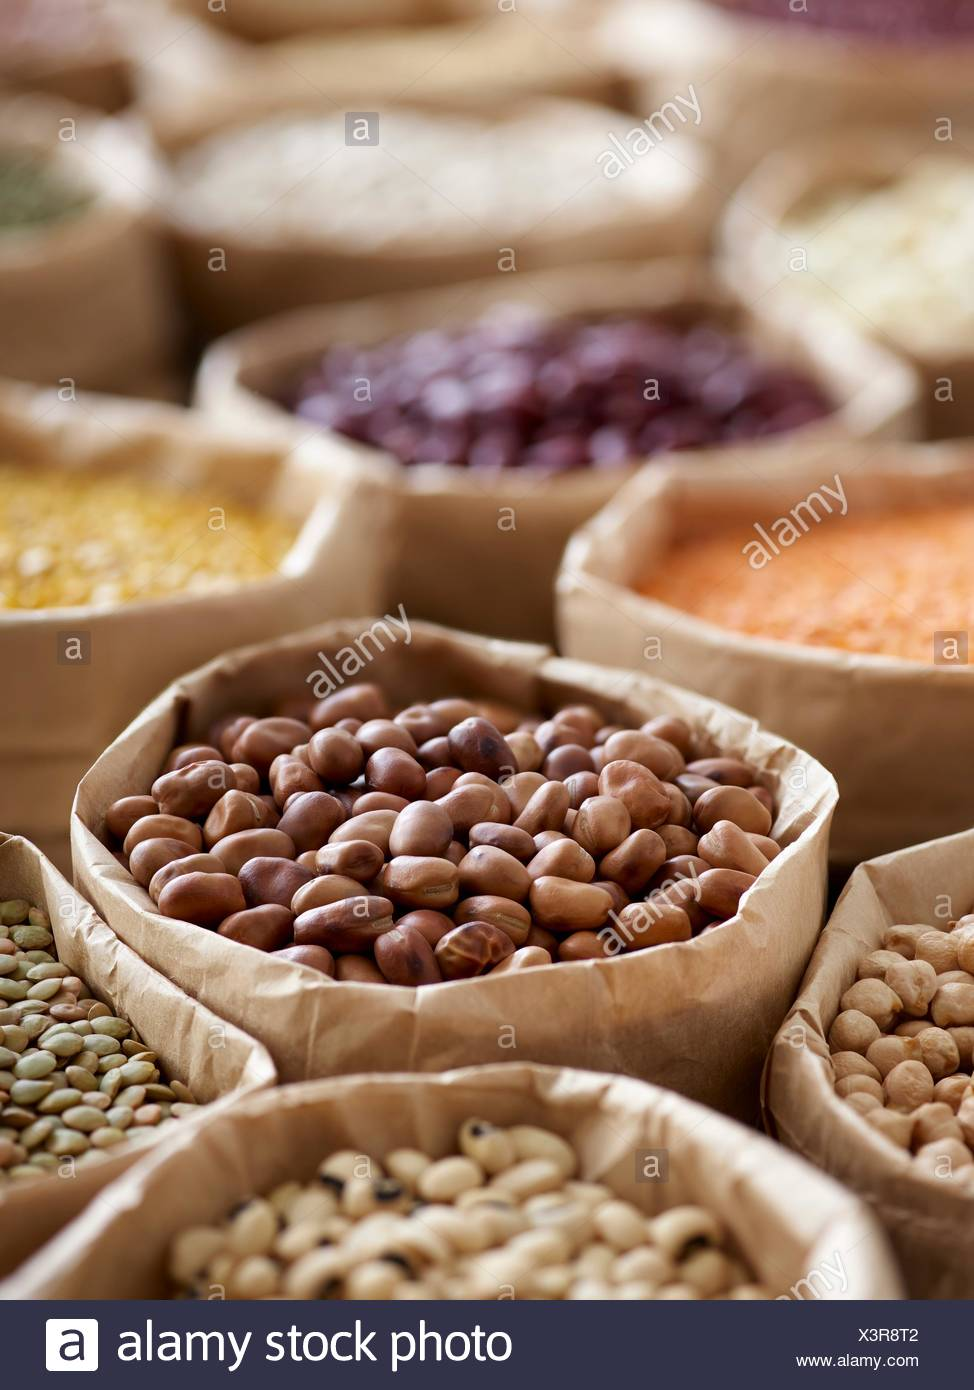 Pulses in paper bags. - Stock Image